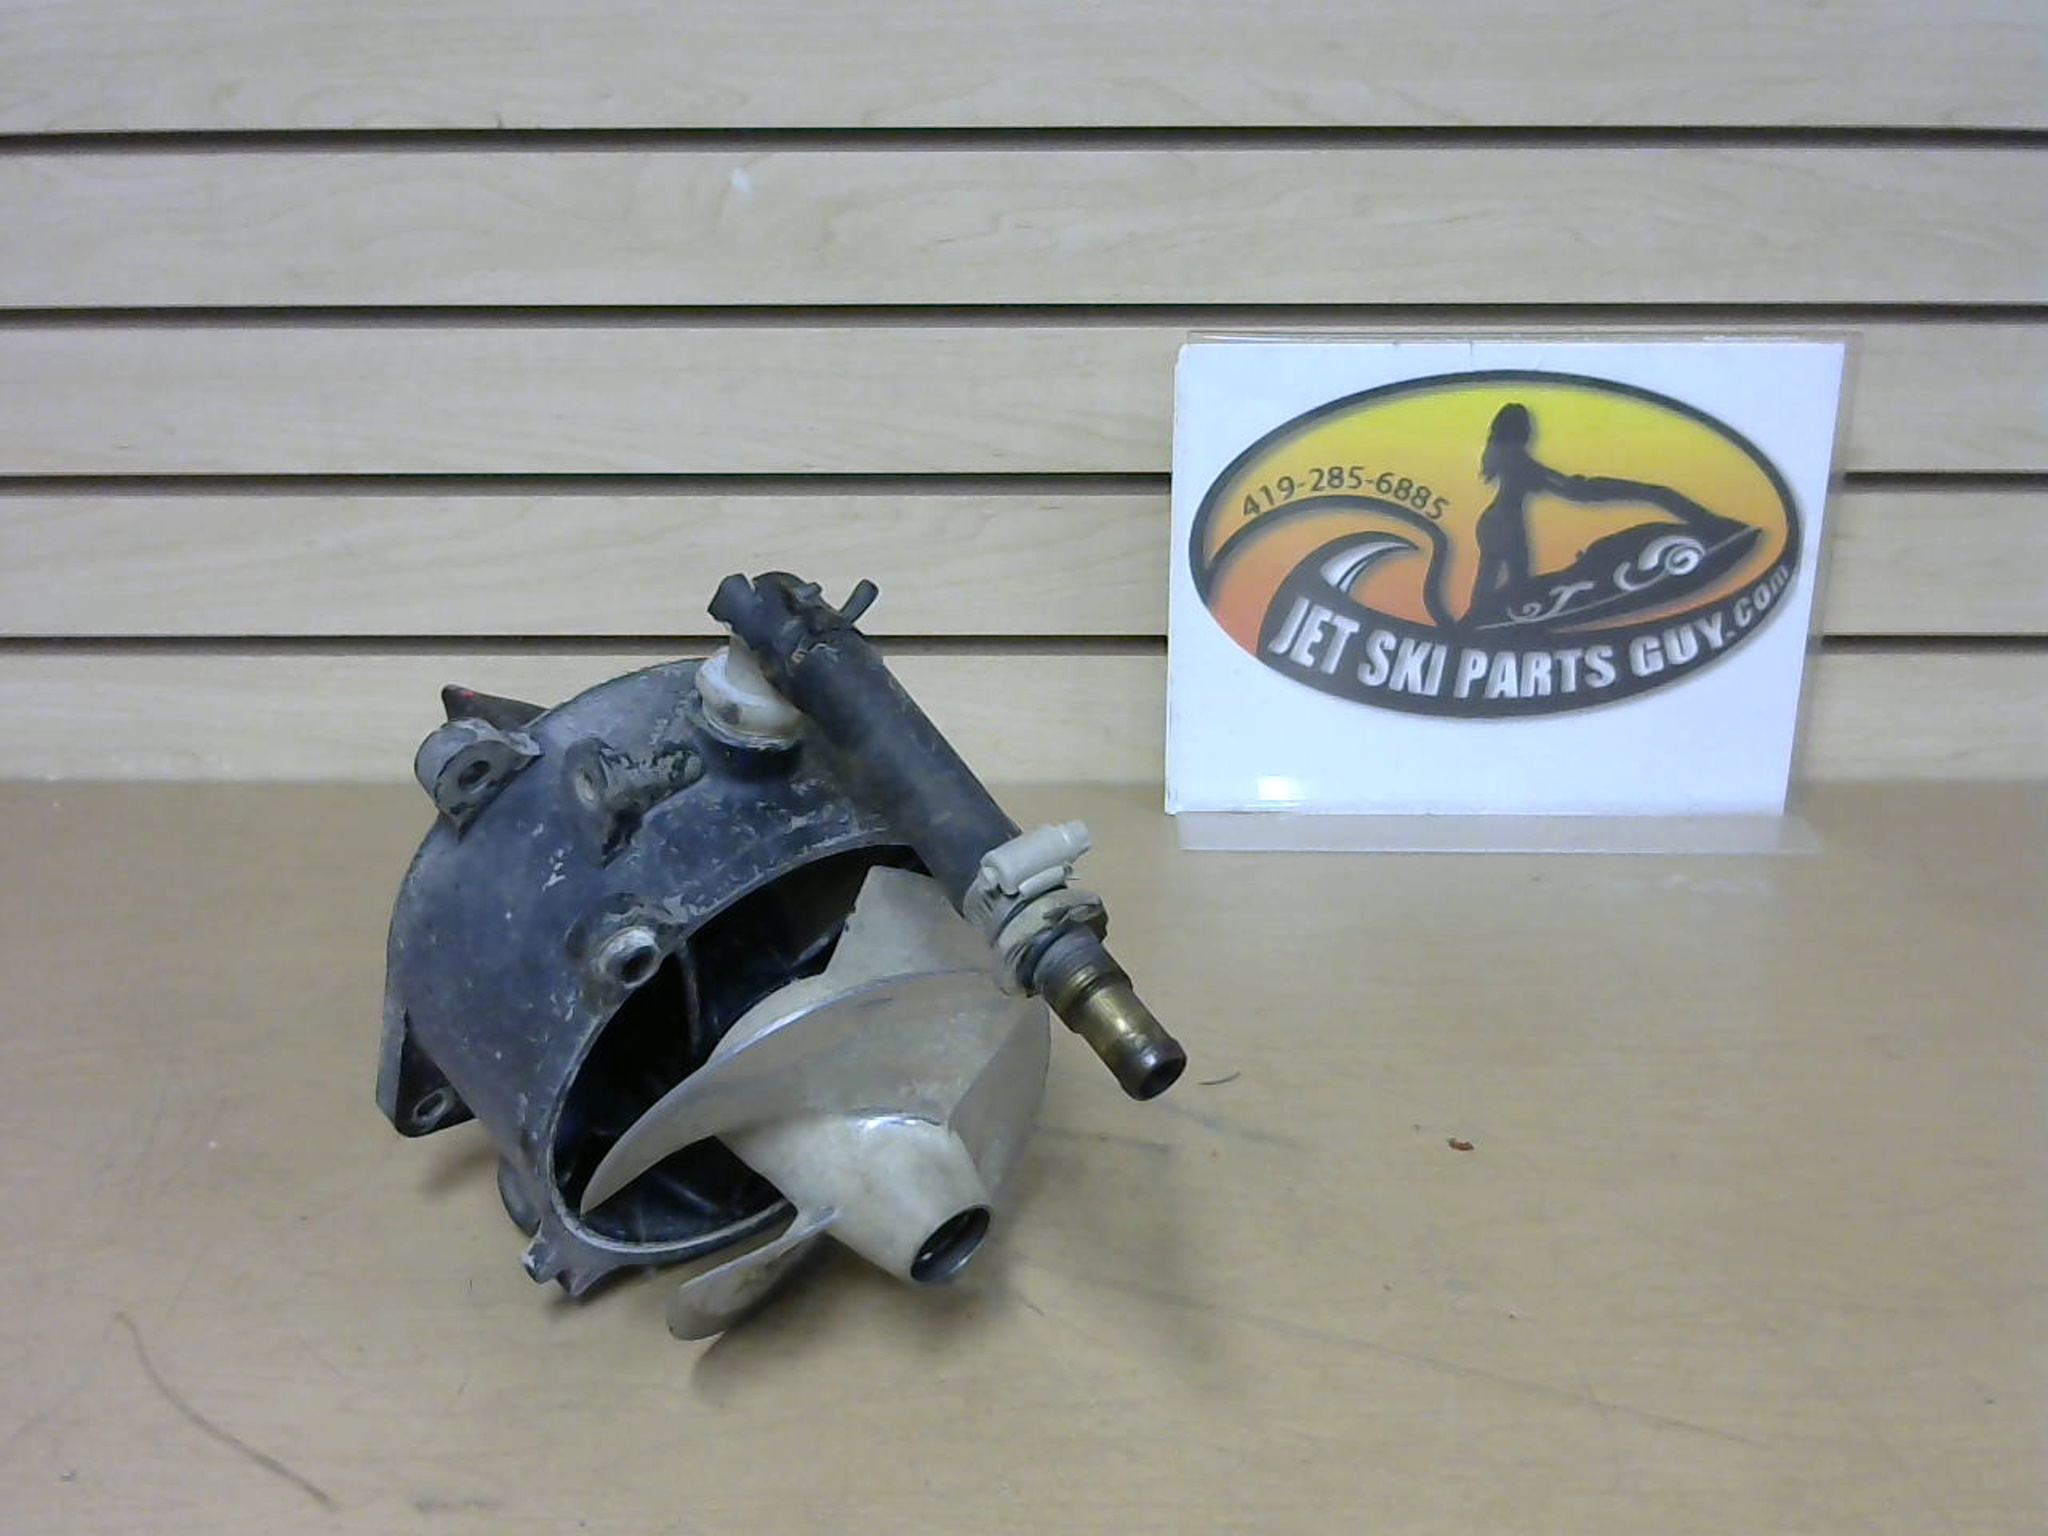 1997 Tigershark Monte Carlo 770 Nice Jet Pump Impeller Assembly 0675-138 0675-108